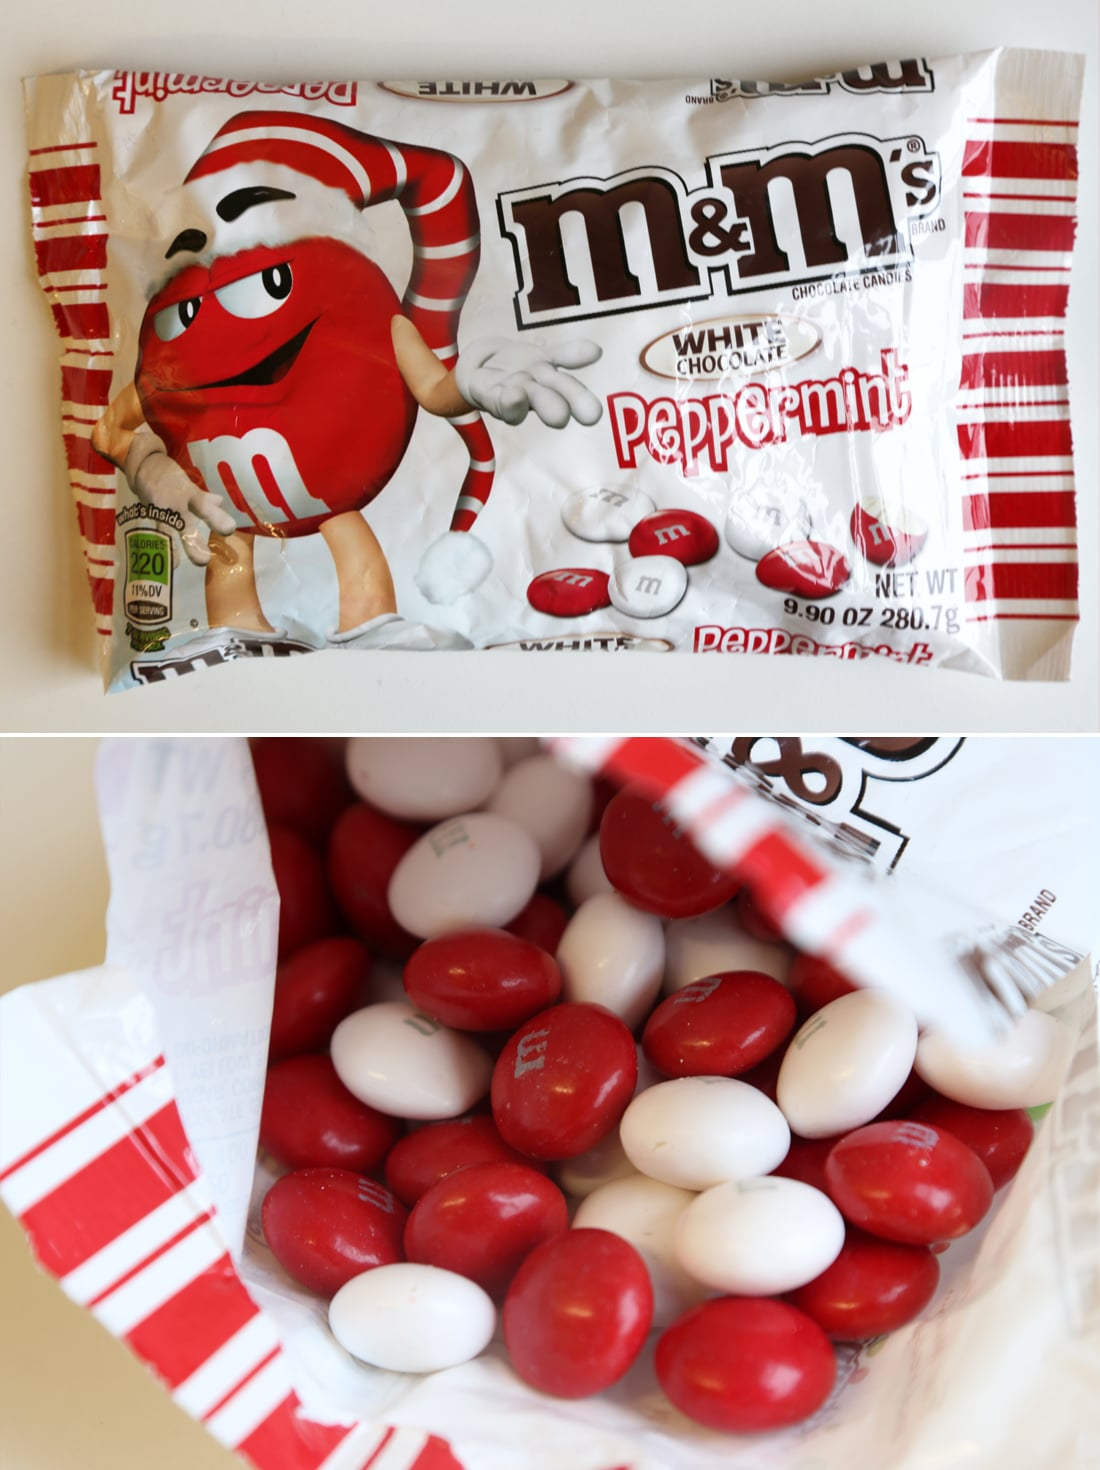 M&M's White Chocolate Peppermint